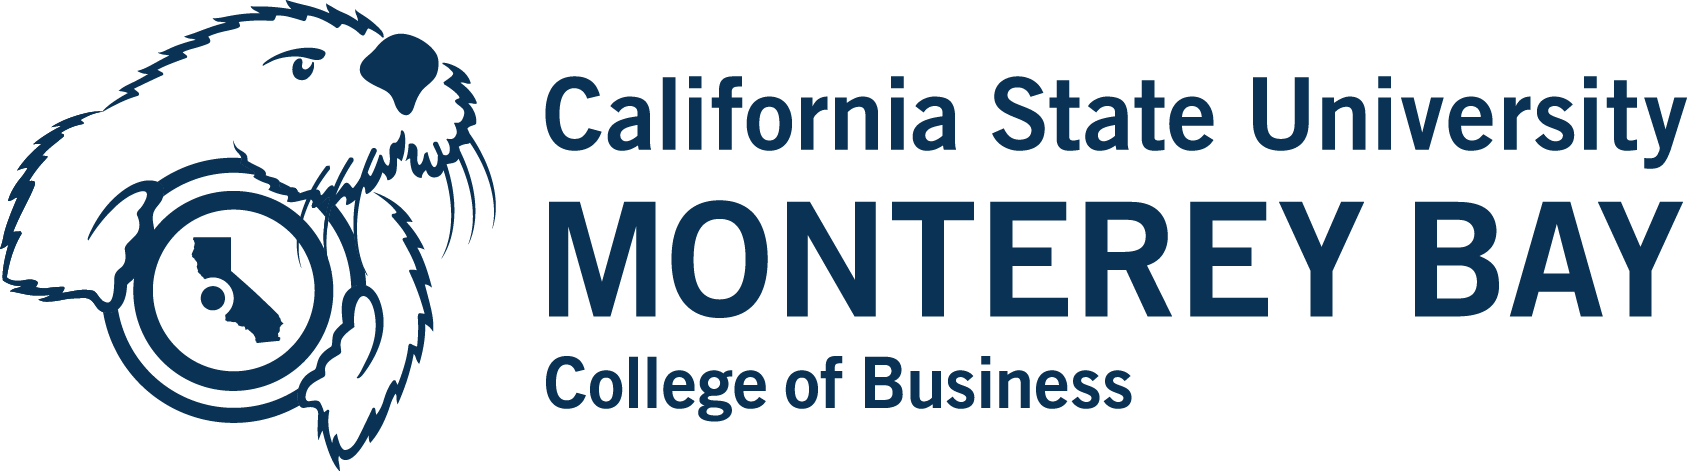 CSUMB College of Business logo